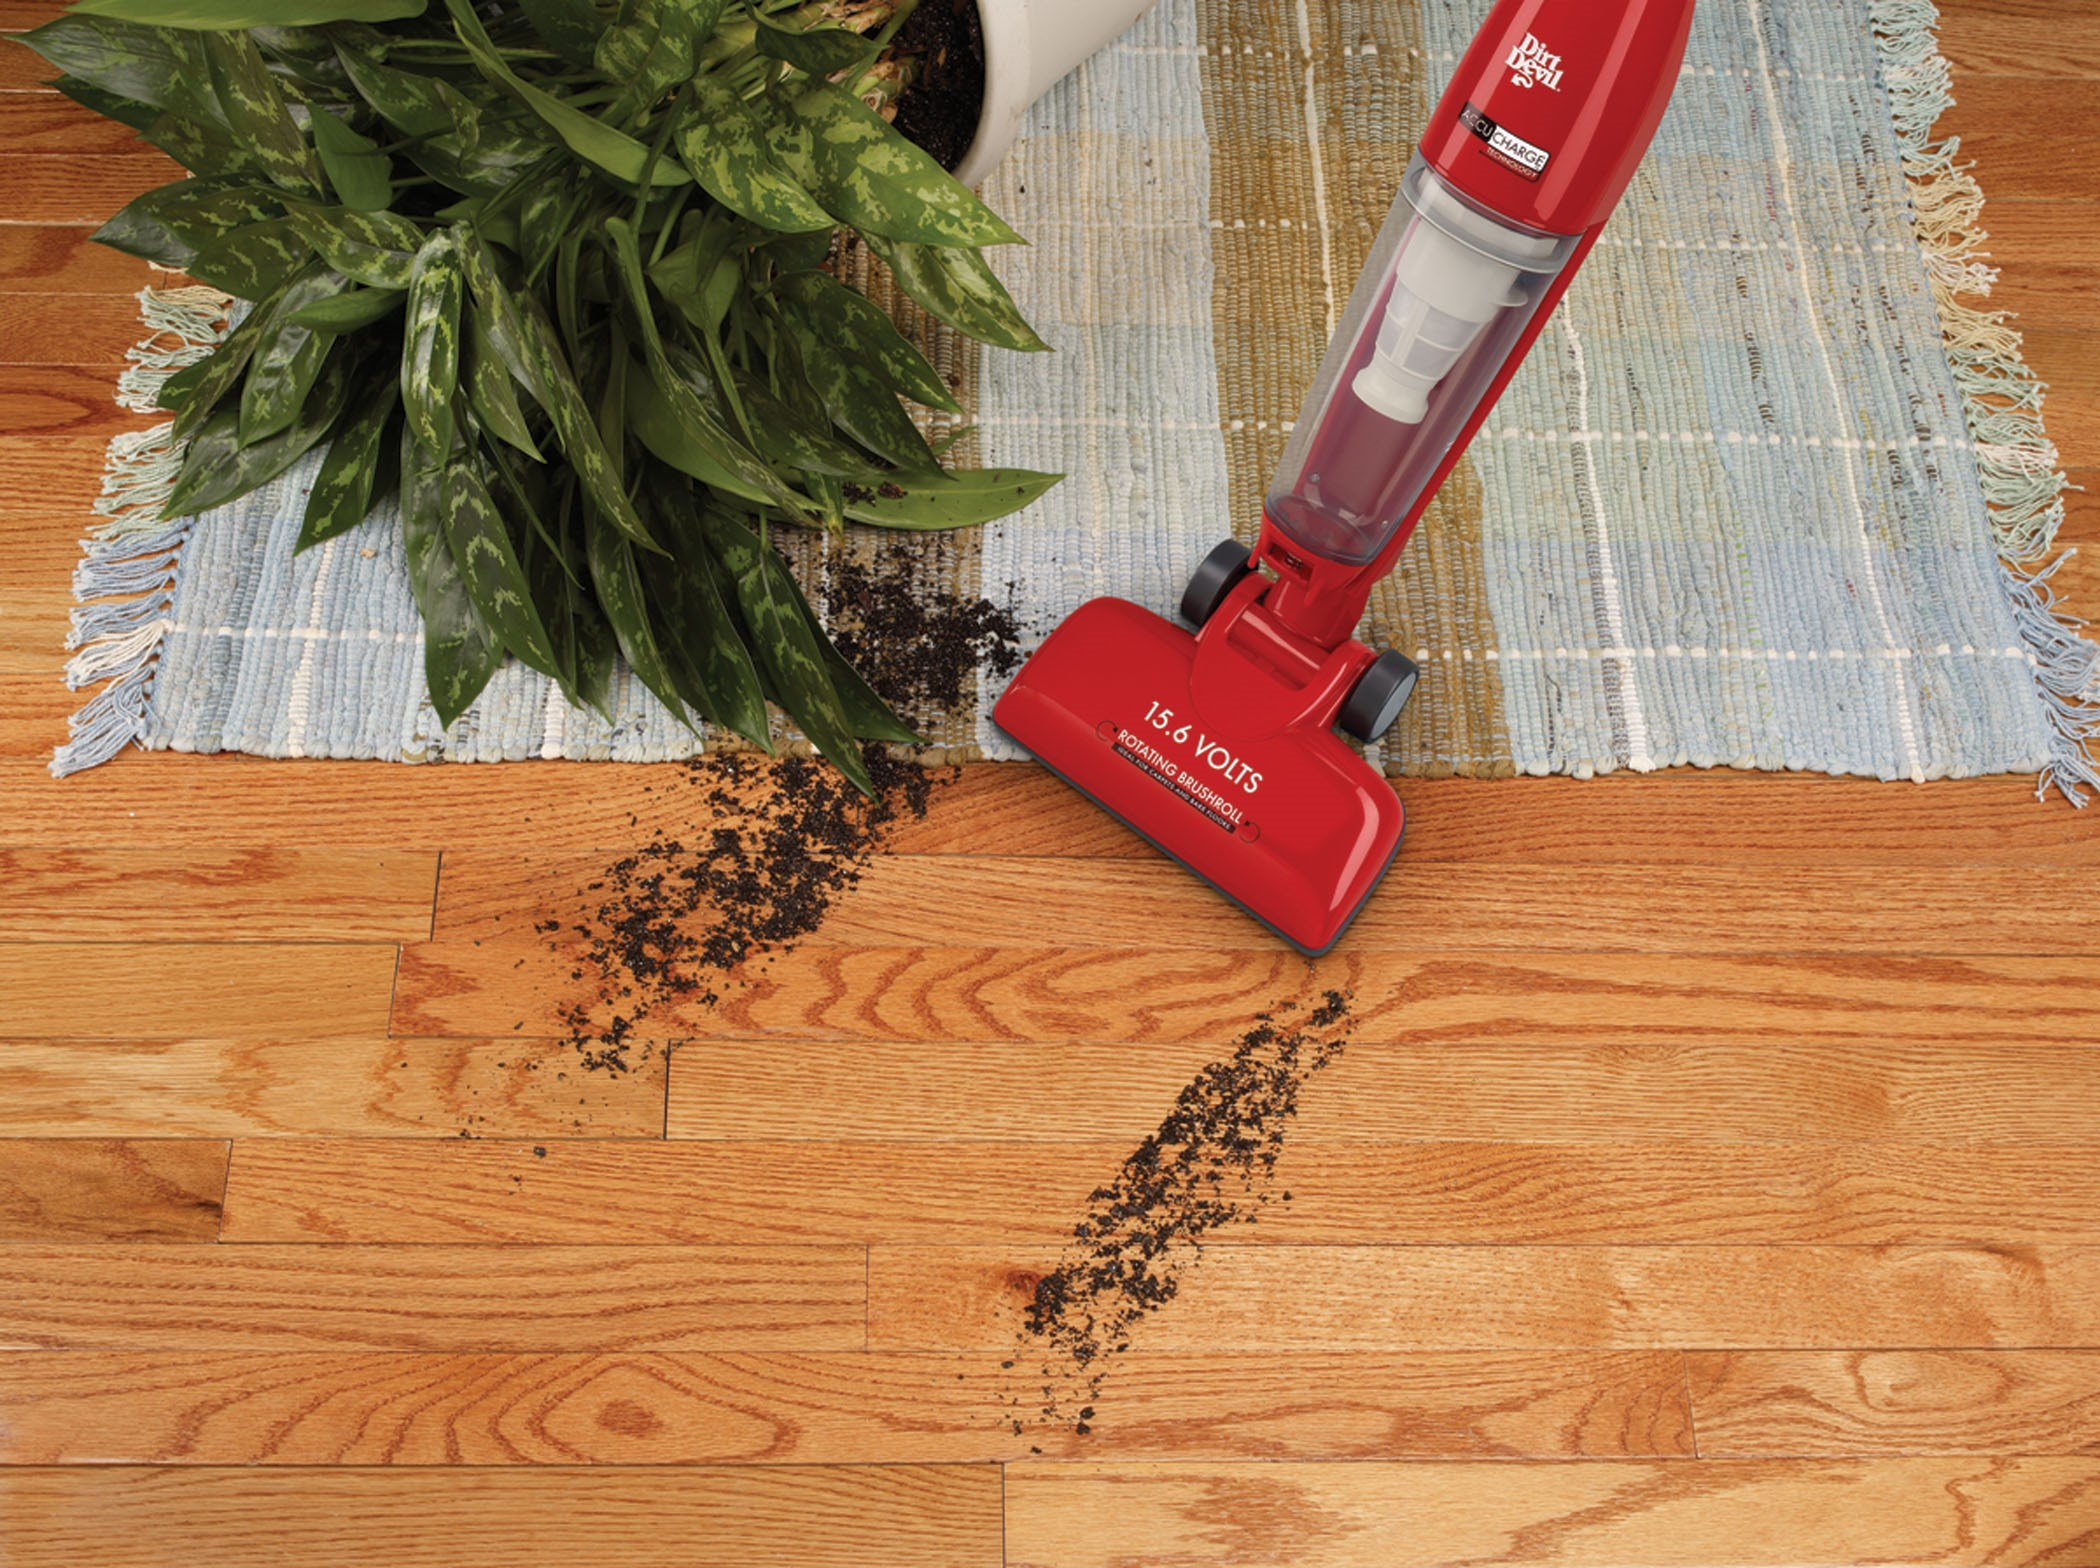 Dirt Devil Cordless Vacuum Review